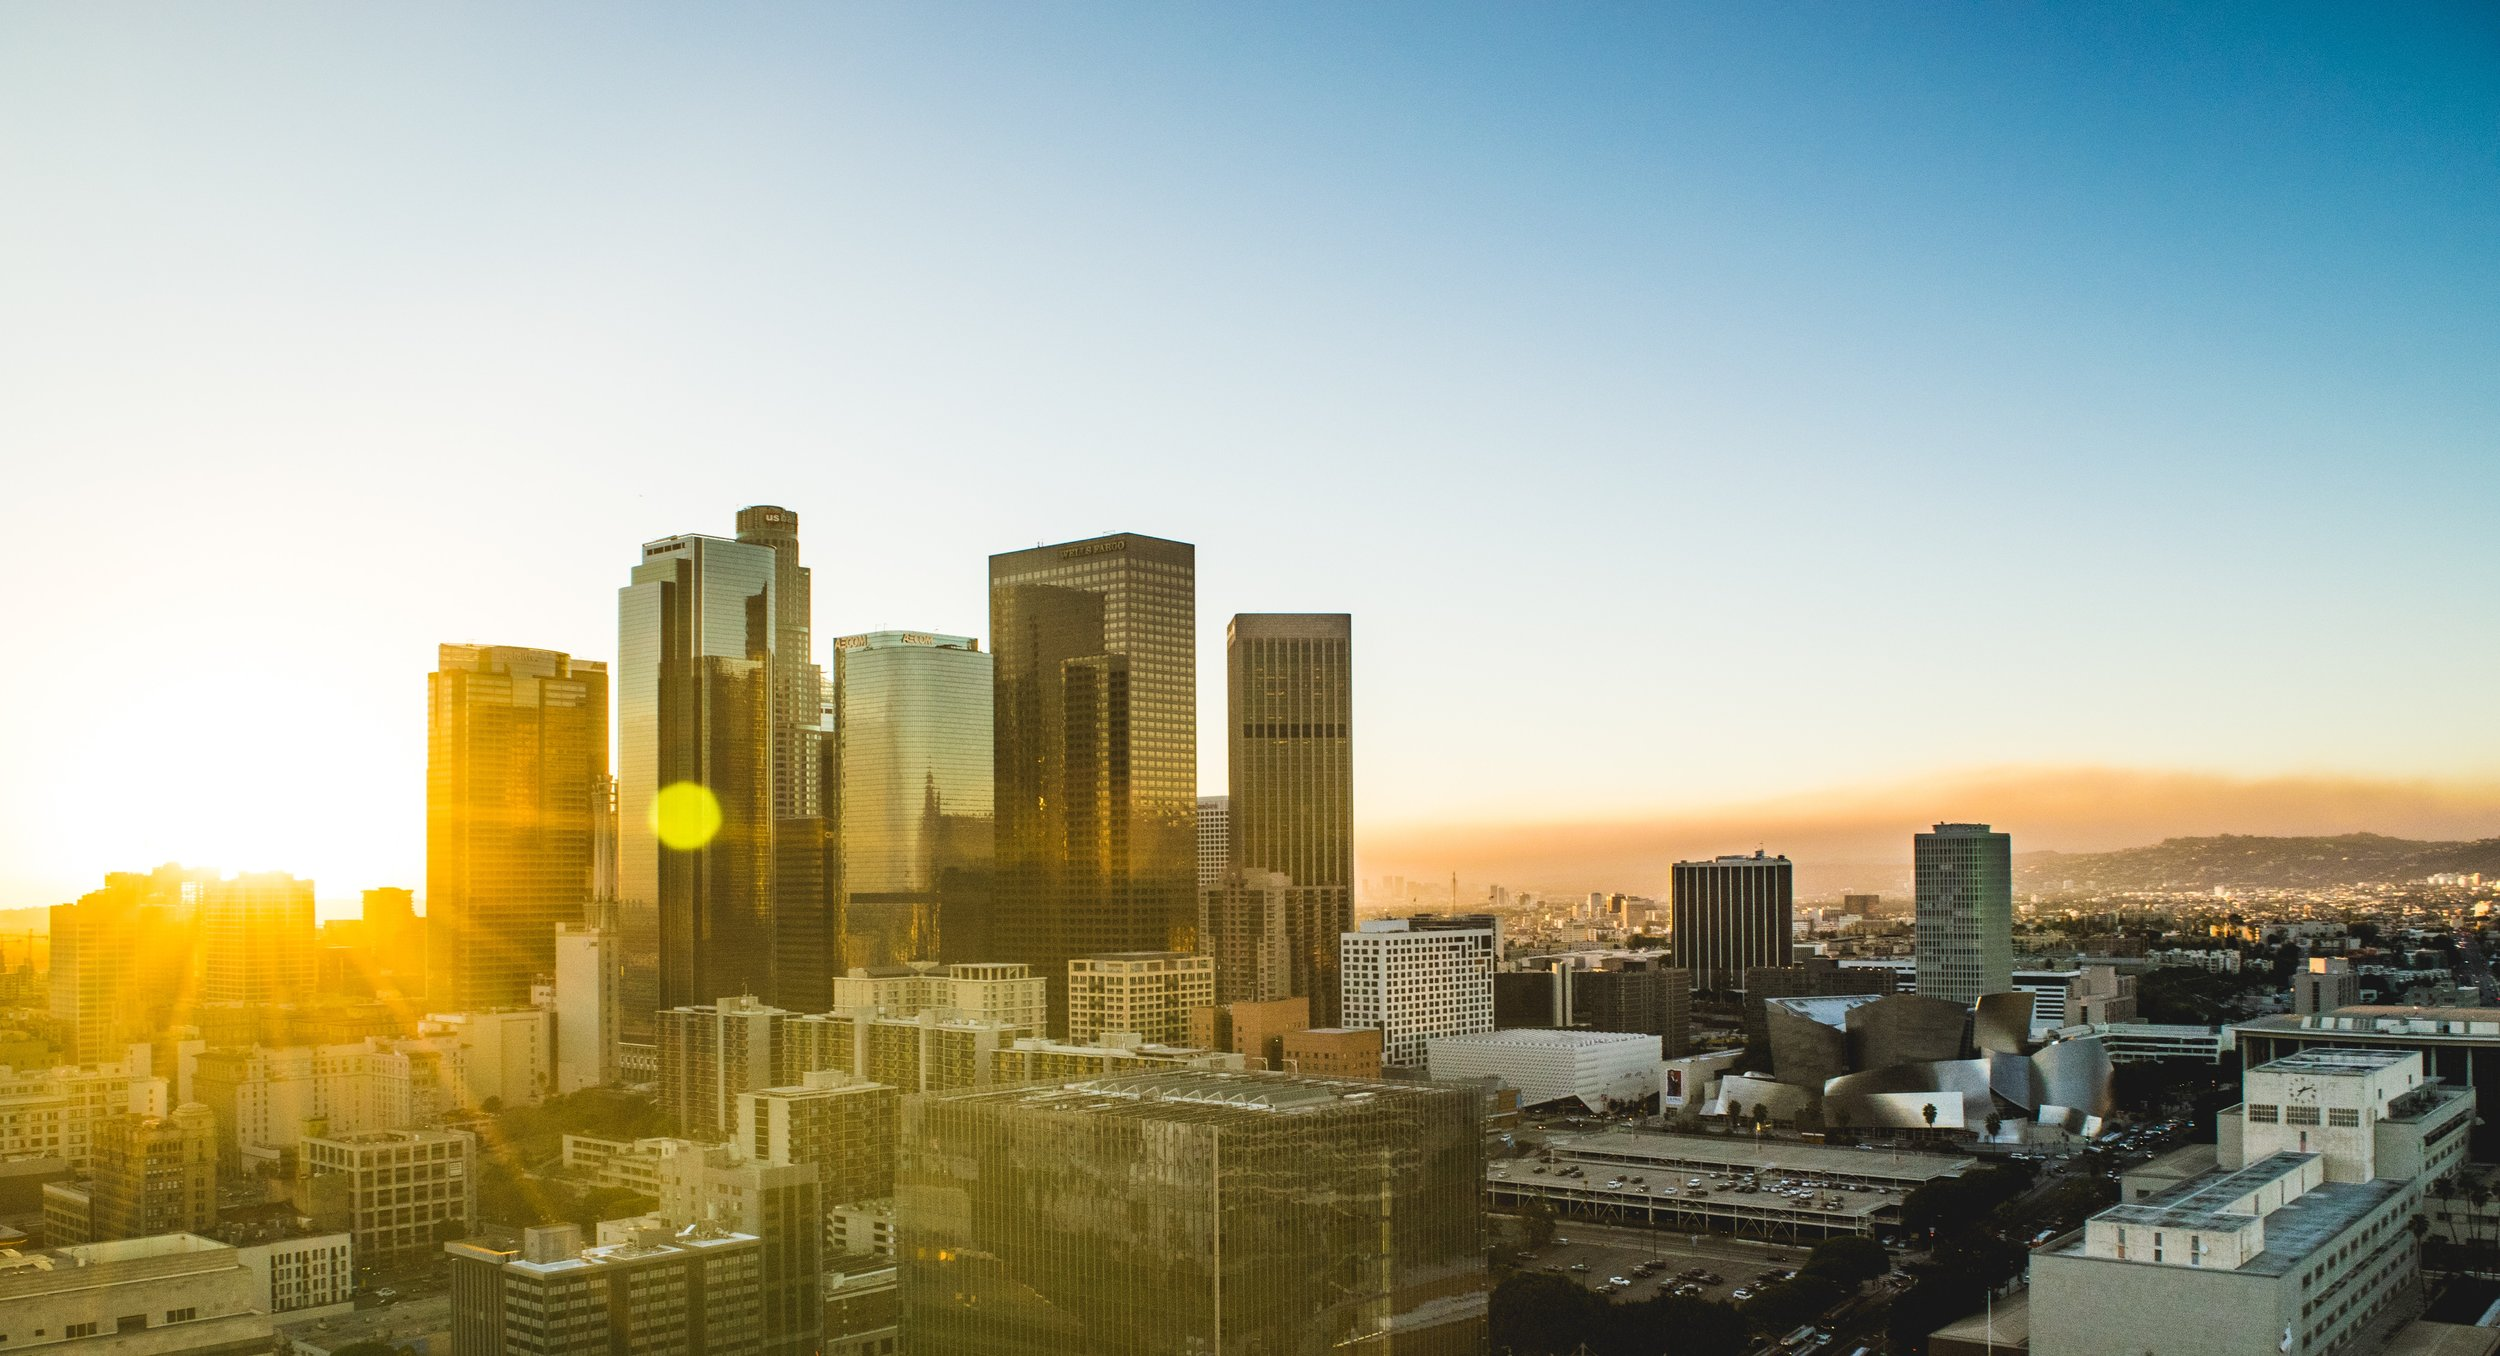 Los Angeles - Commercial Real Estate Company